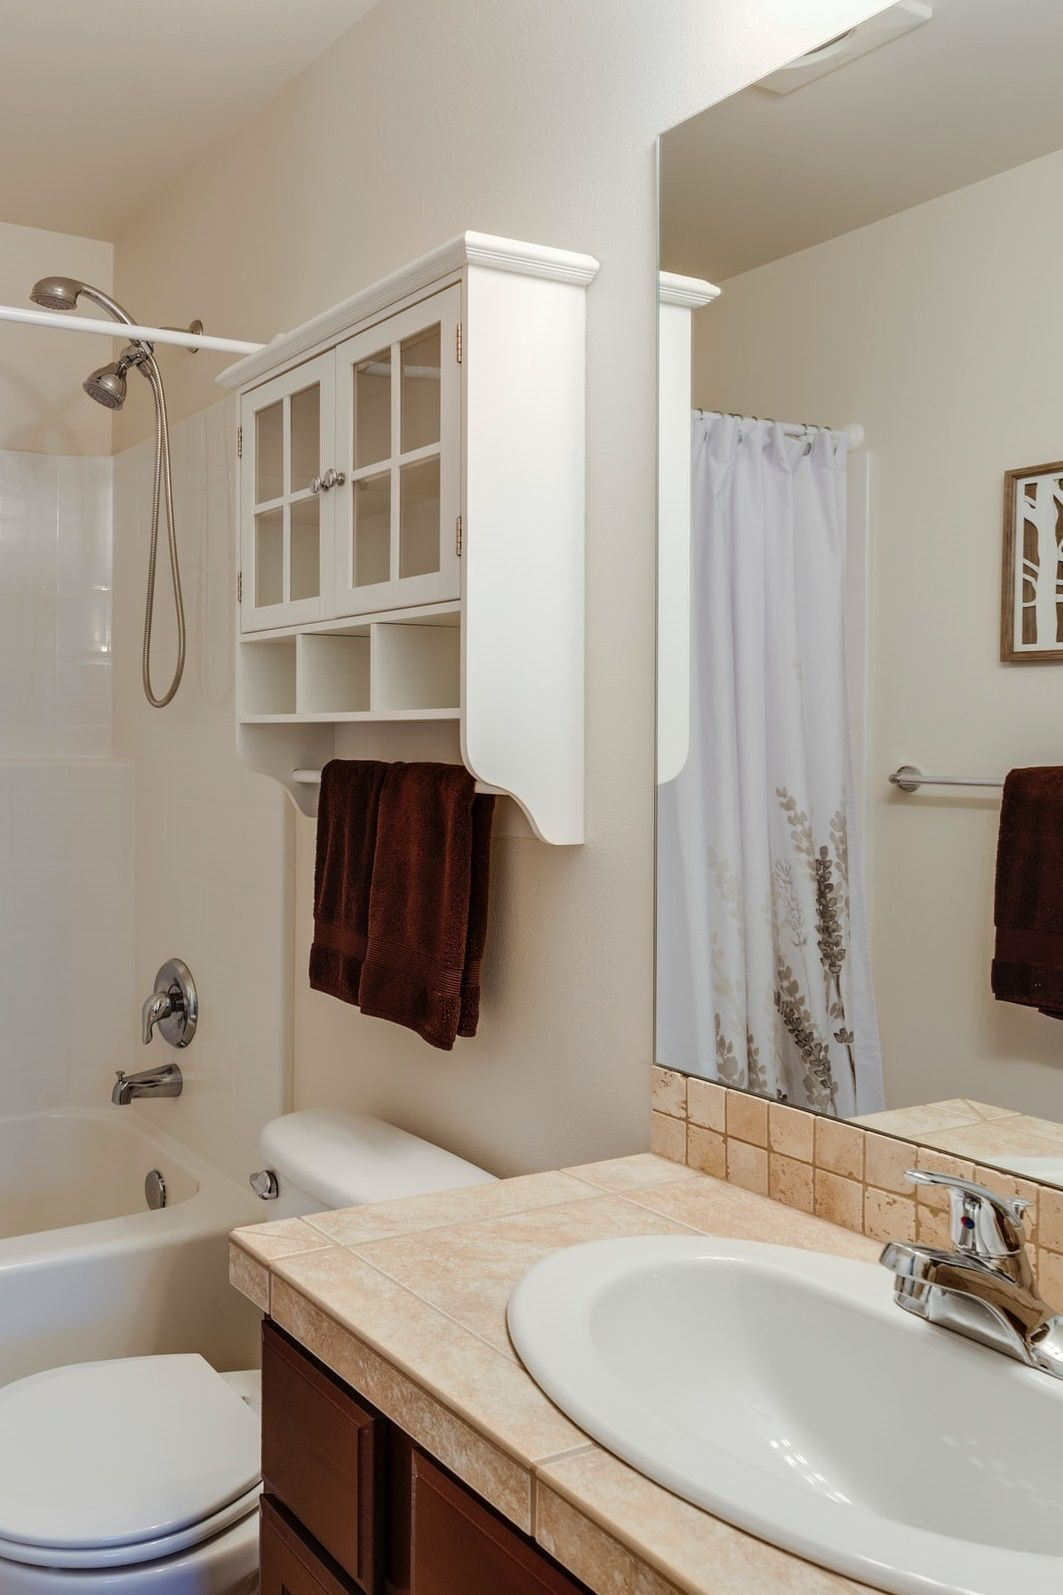 8 Clever Tricks On How To Make A Small Bathroom Look Bigger In 2020 Bathroom Makeovers On A Budget Master Bathroom Decor Bathroom Design